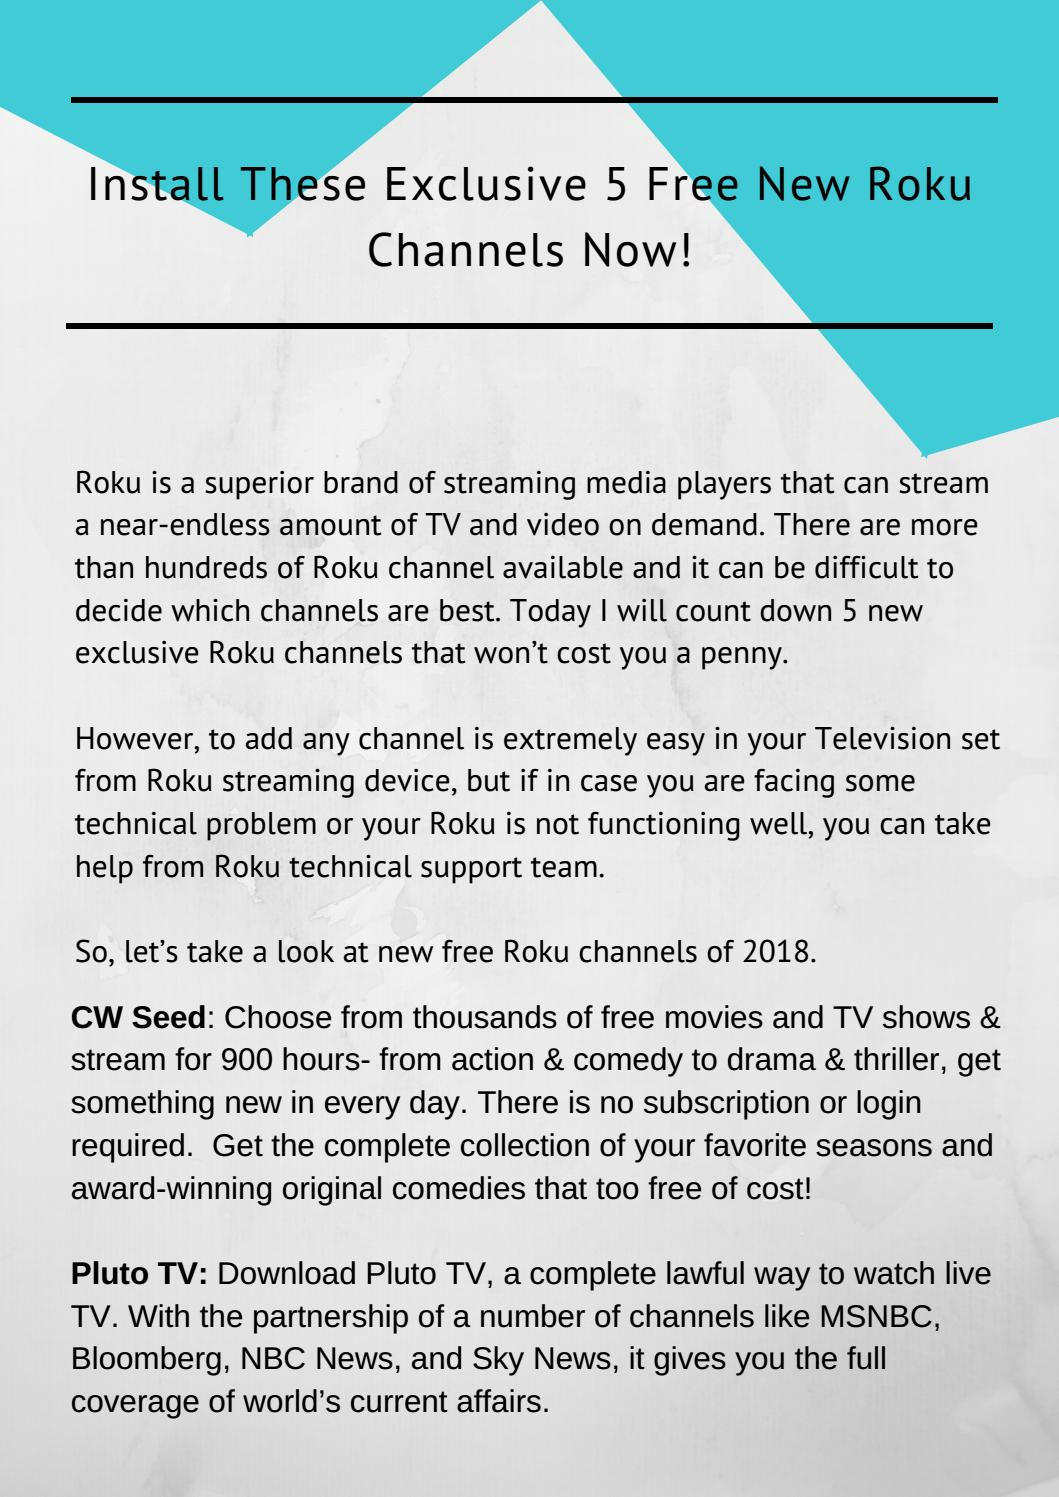 Avail Support Services to Add Channels on Roku- Call @1-800